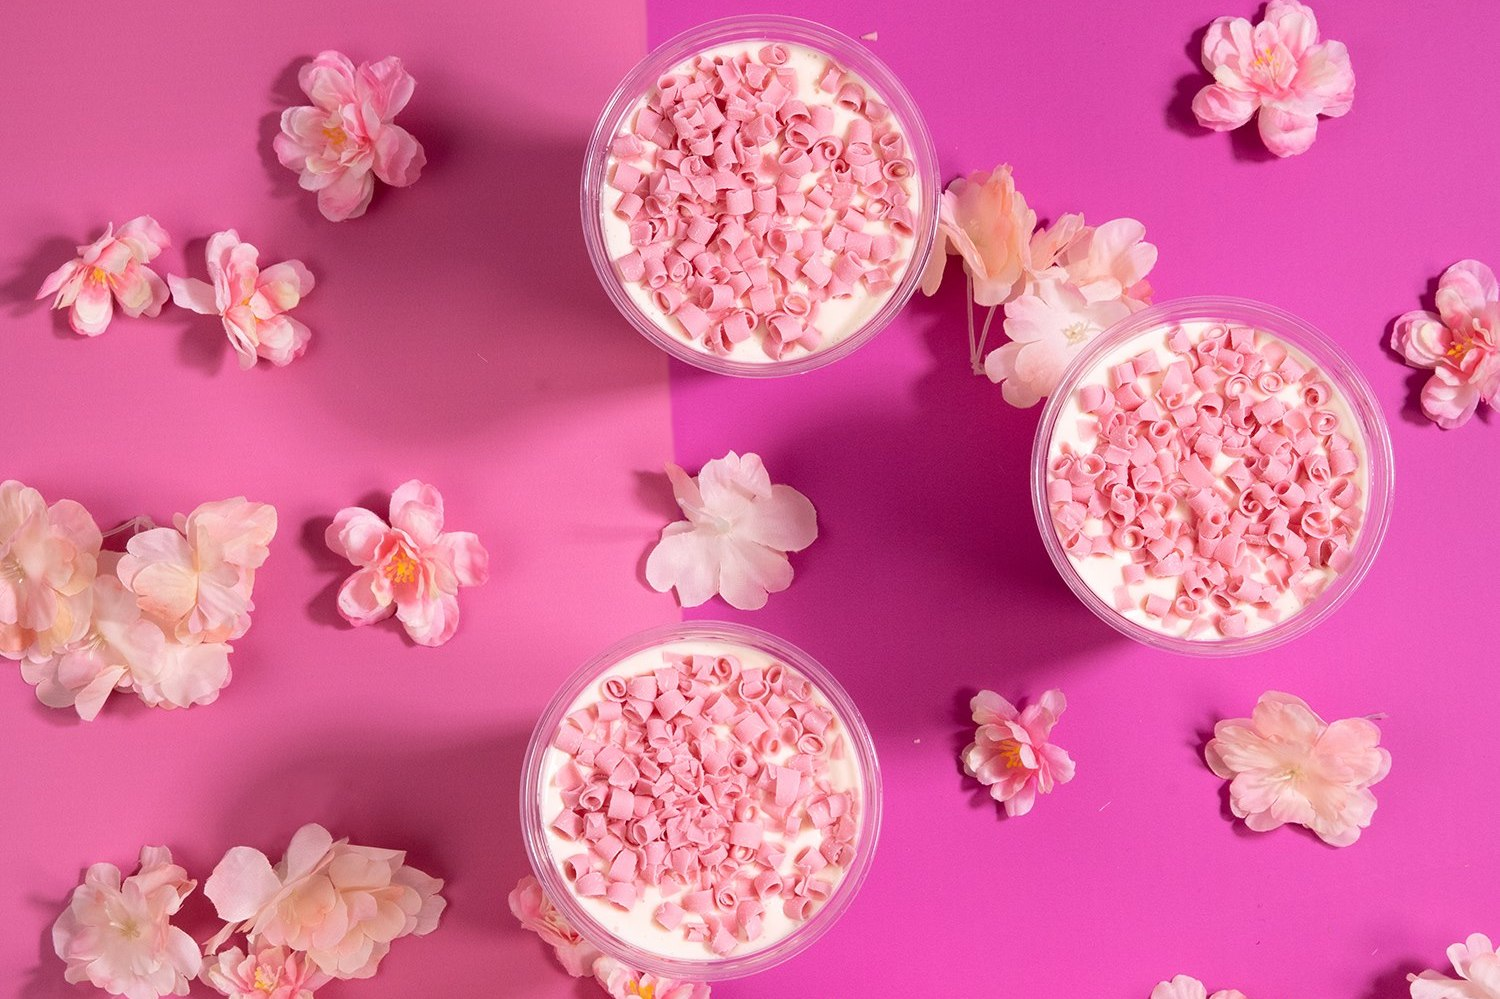 Here's What Shake Shack's Cherry Blossom Shake Really Tastes Like